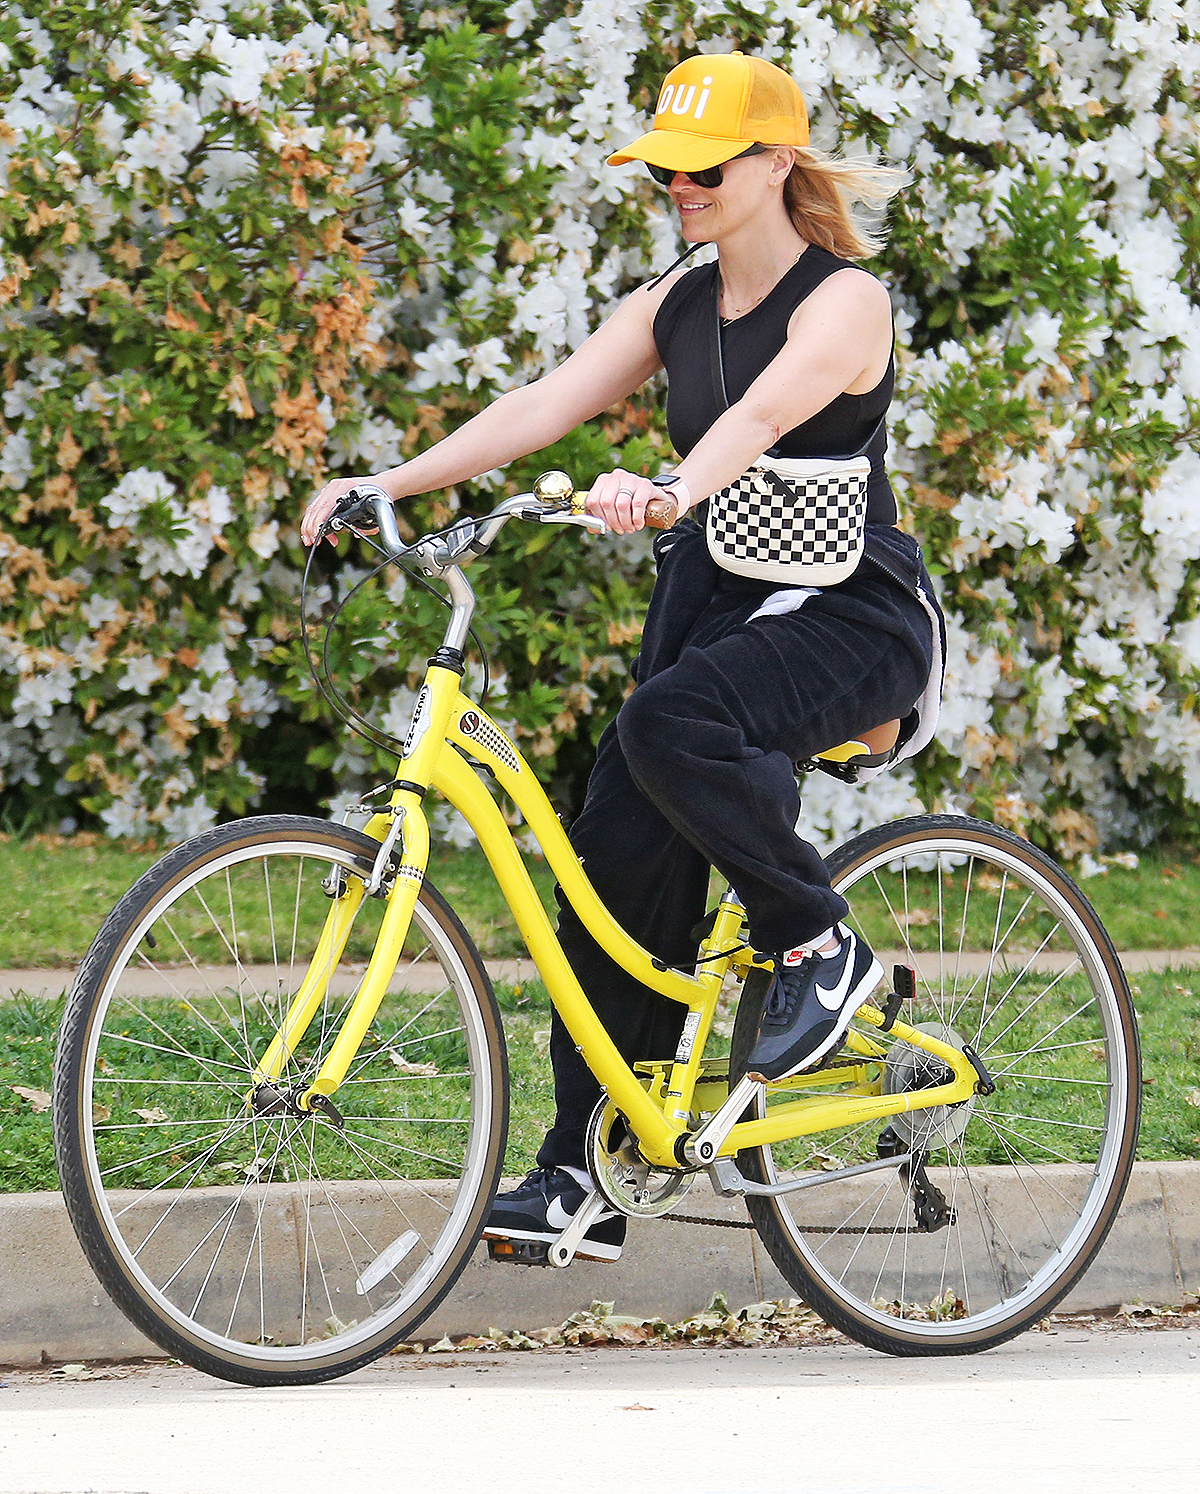 Reese Witherspoon rides her bike in Los Angeles. Reese Witherspoon out and about, Los Angeles - 31 Mar 2020